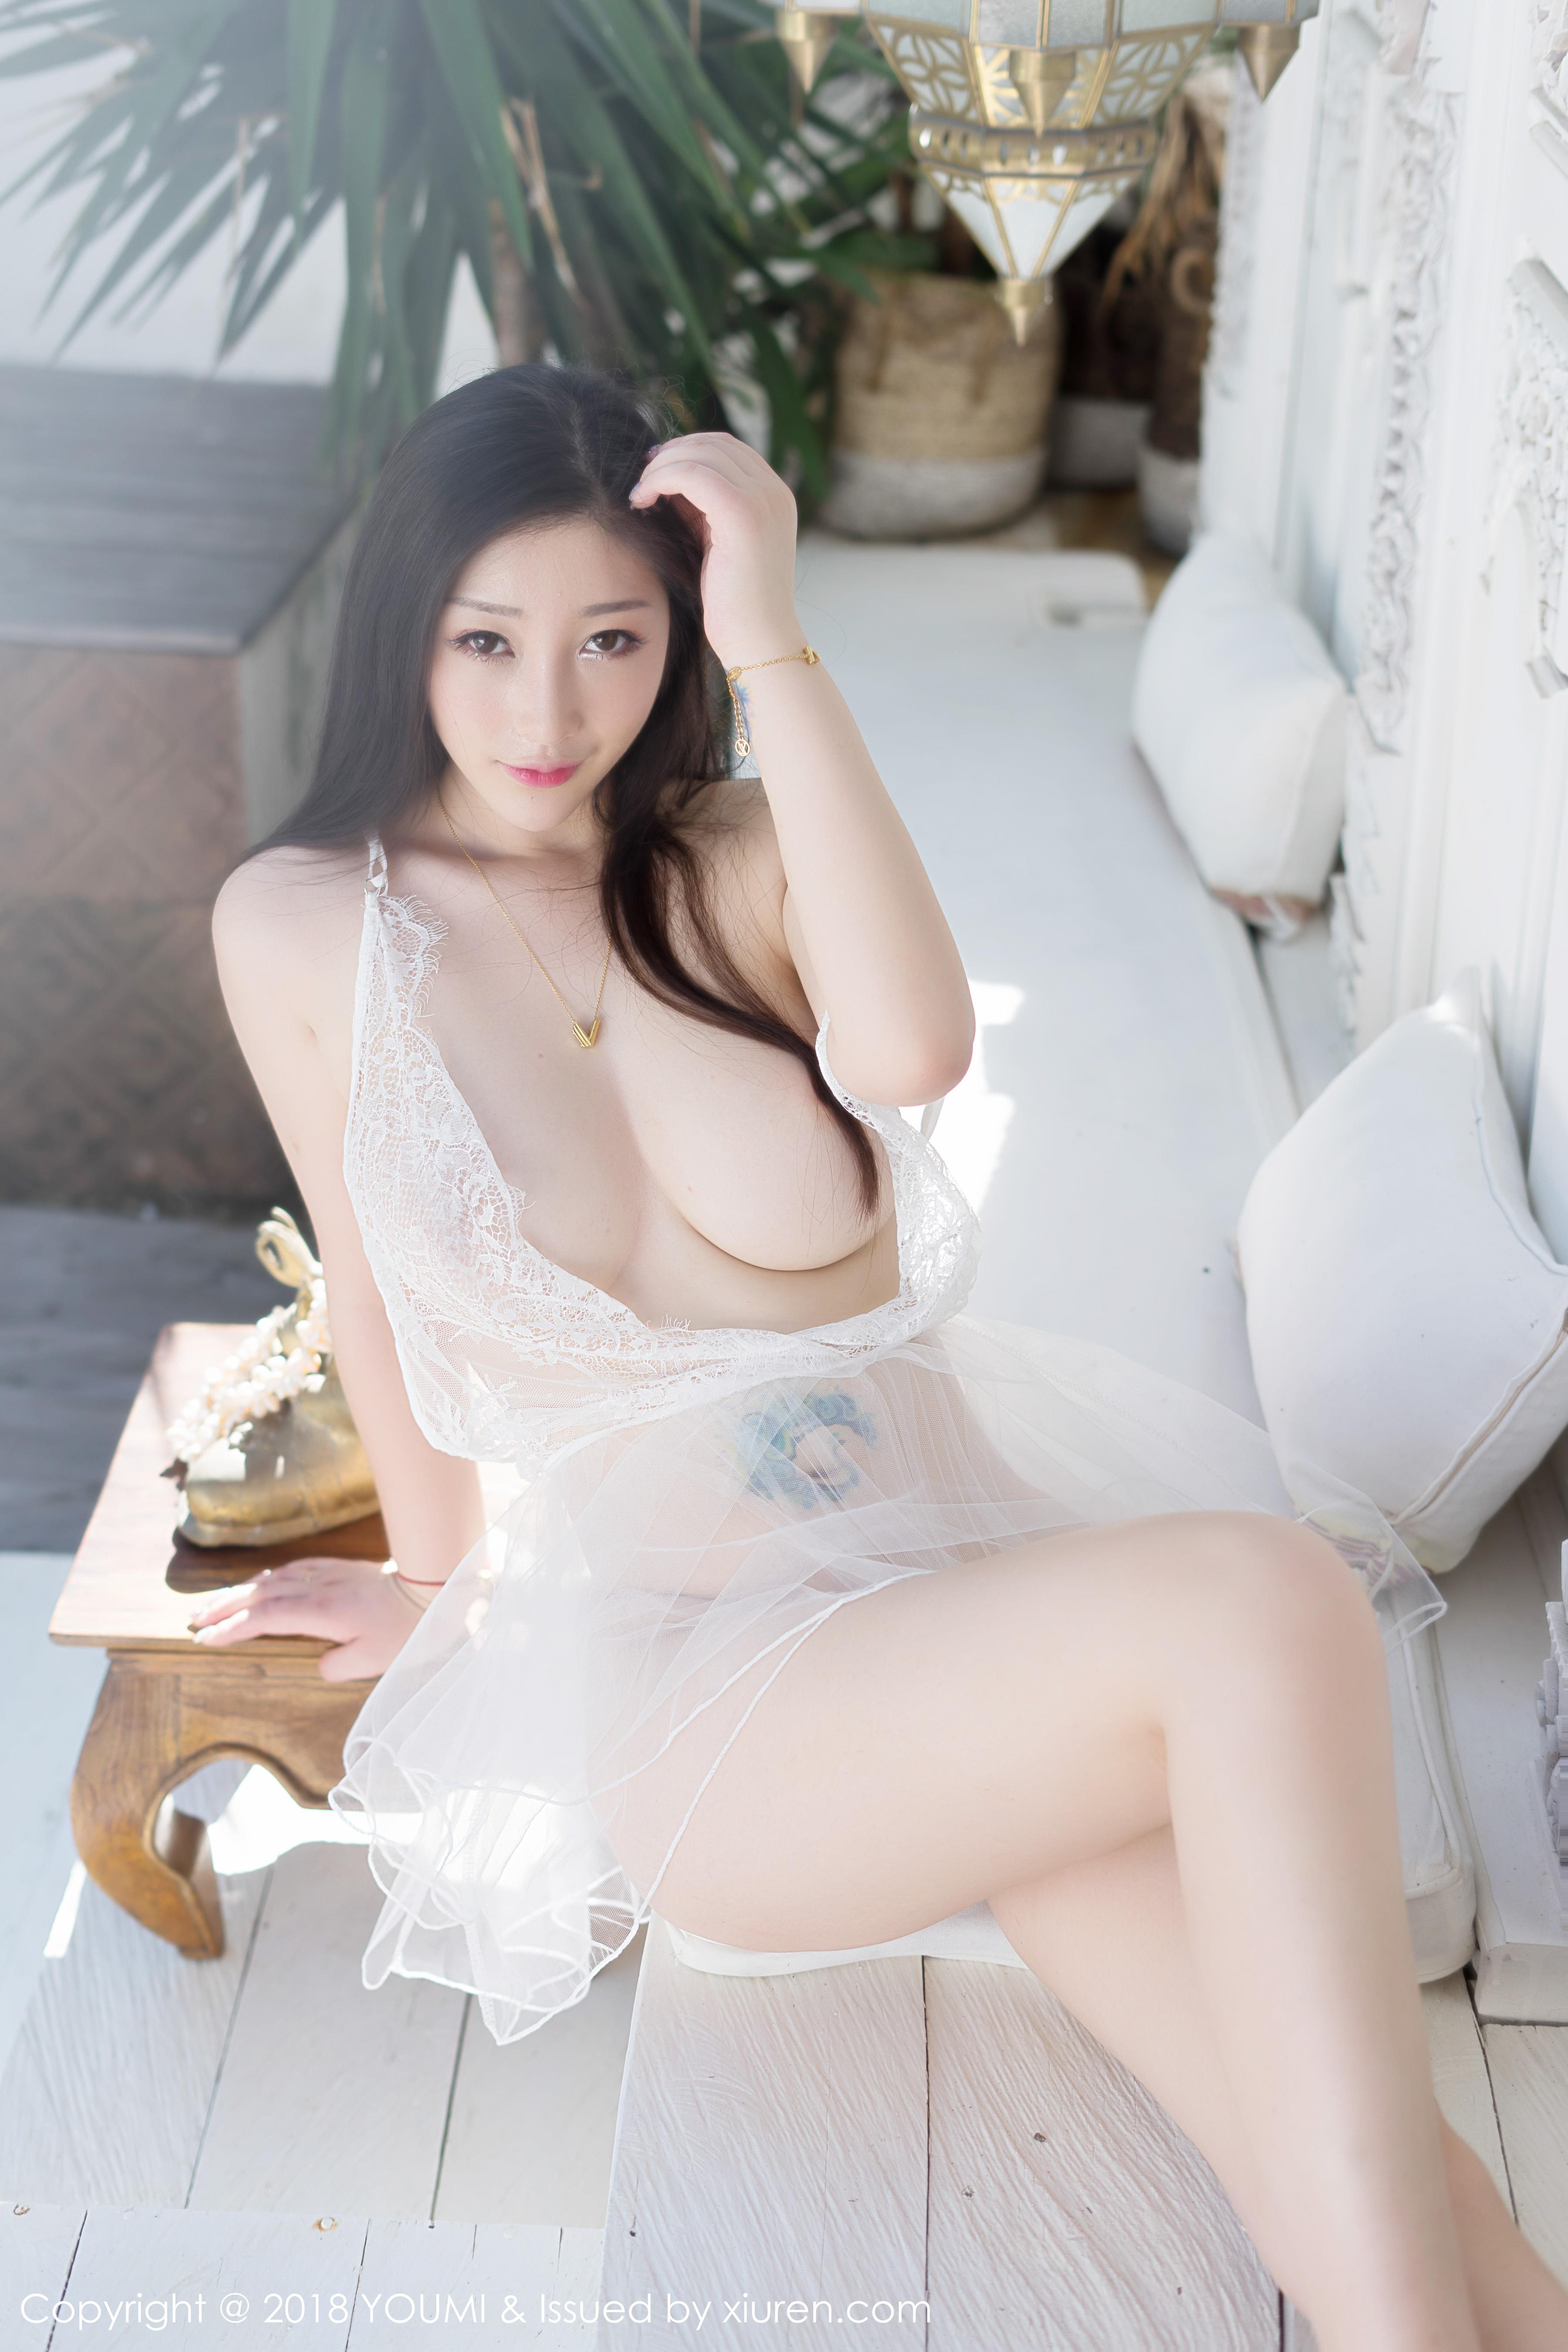 A woman chosen by God. hot Chinese glamour - best boobs